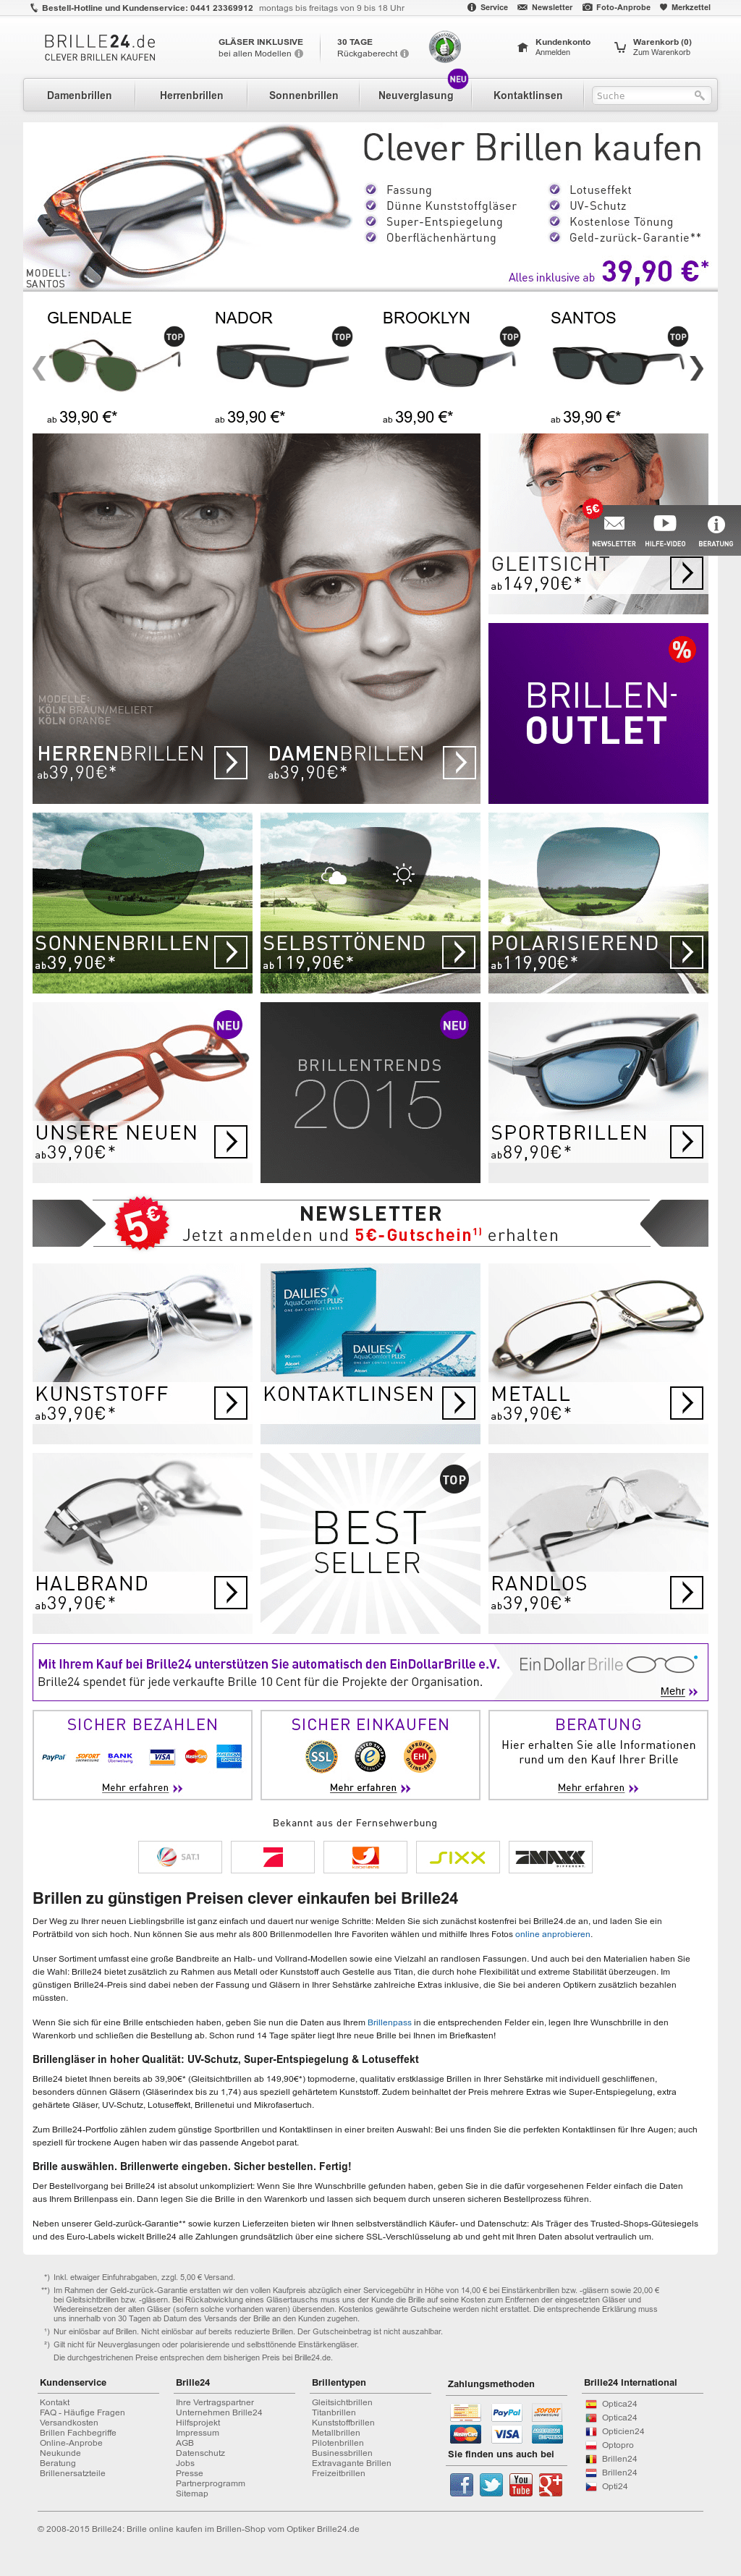 Test Optiker 2015 Brille24 Competitors Revenue And Employees Owler Company